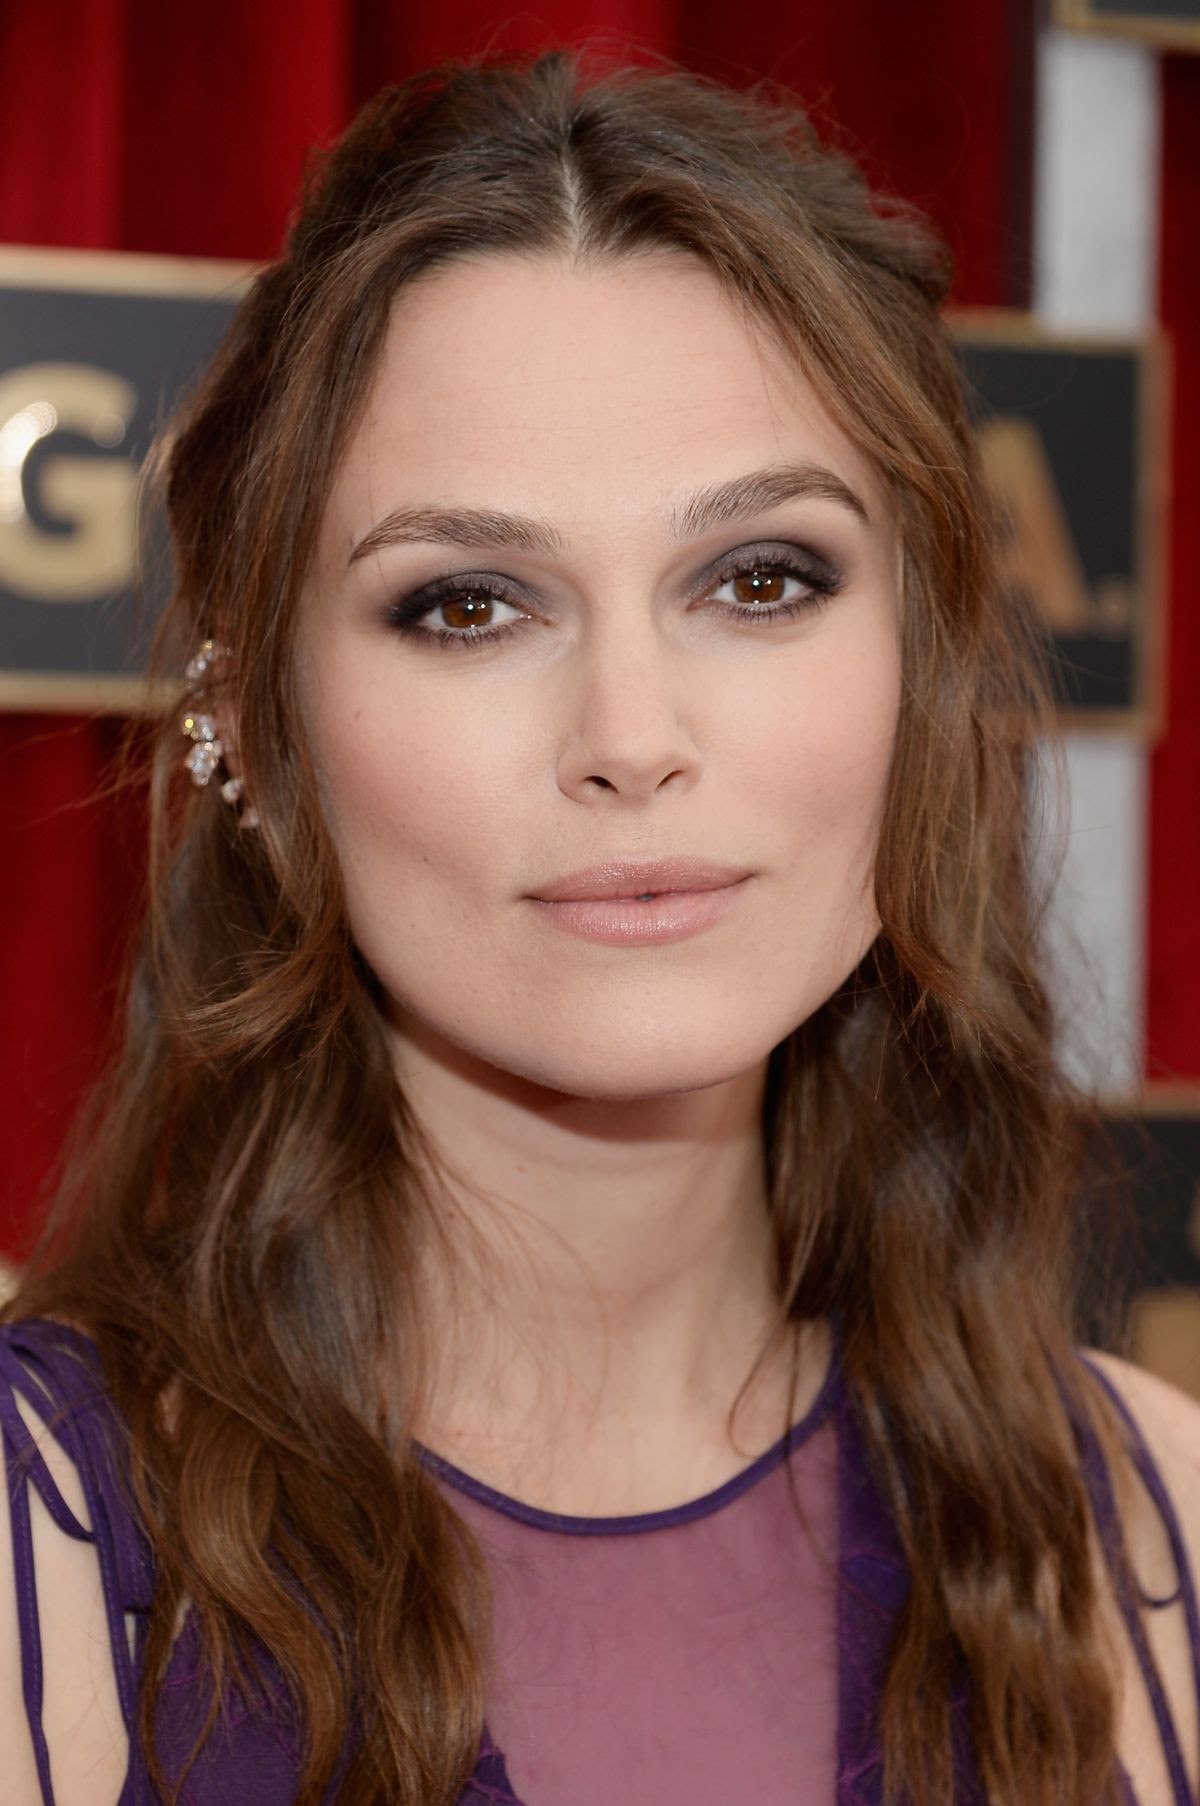 KEIRA KNIGHTLEY at 2015 Screen Actor Guild Awards in Los Angeles